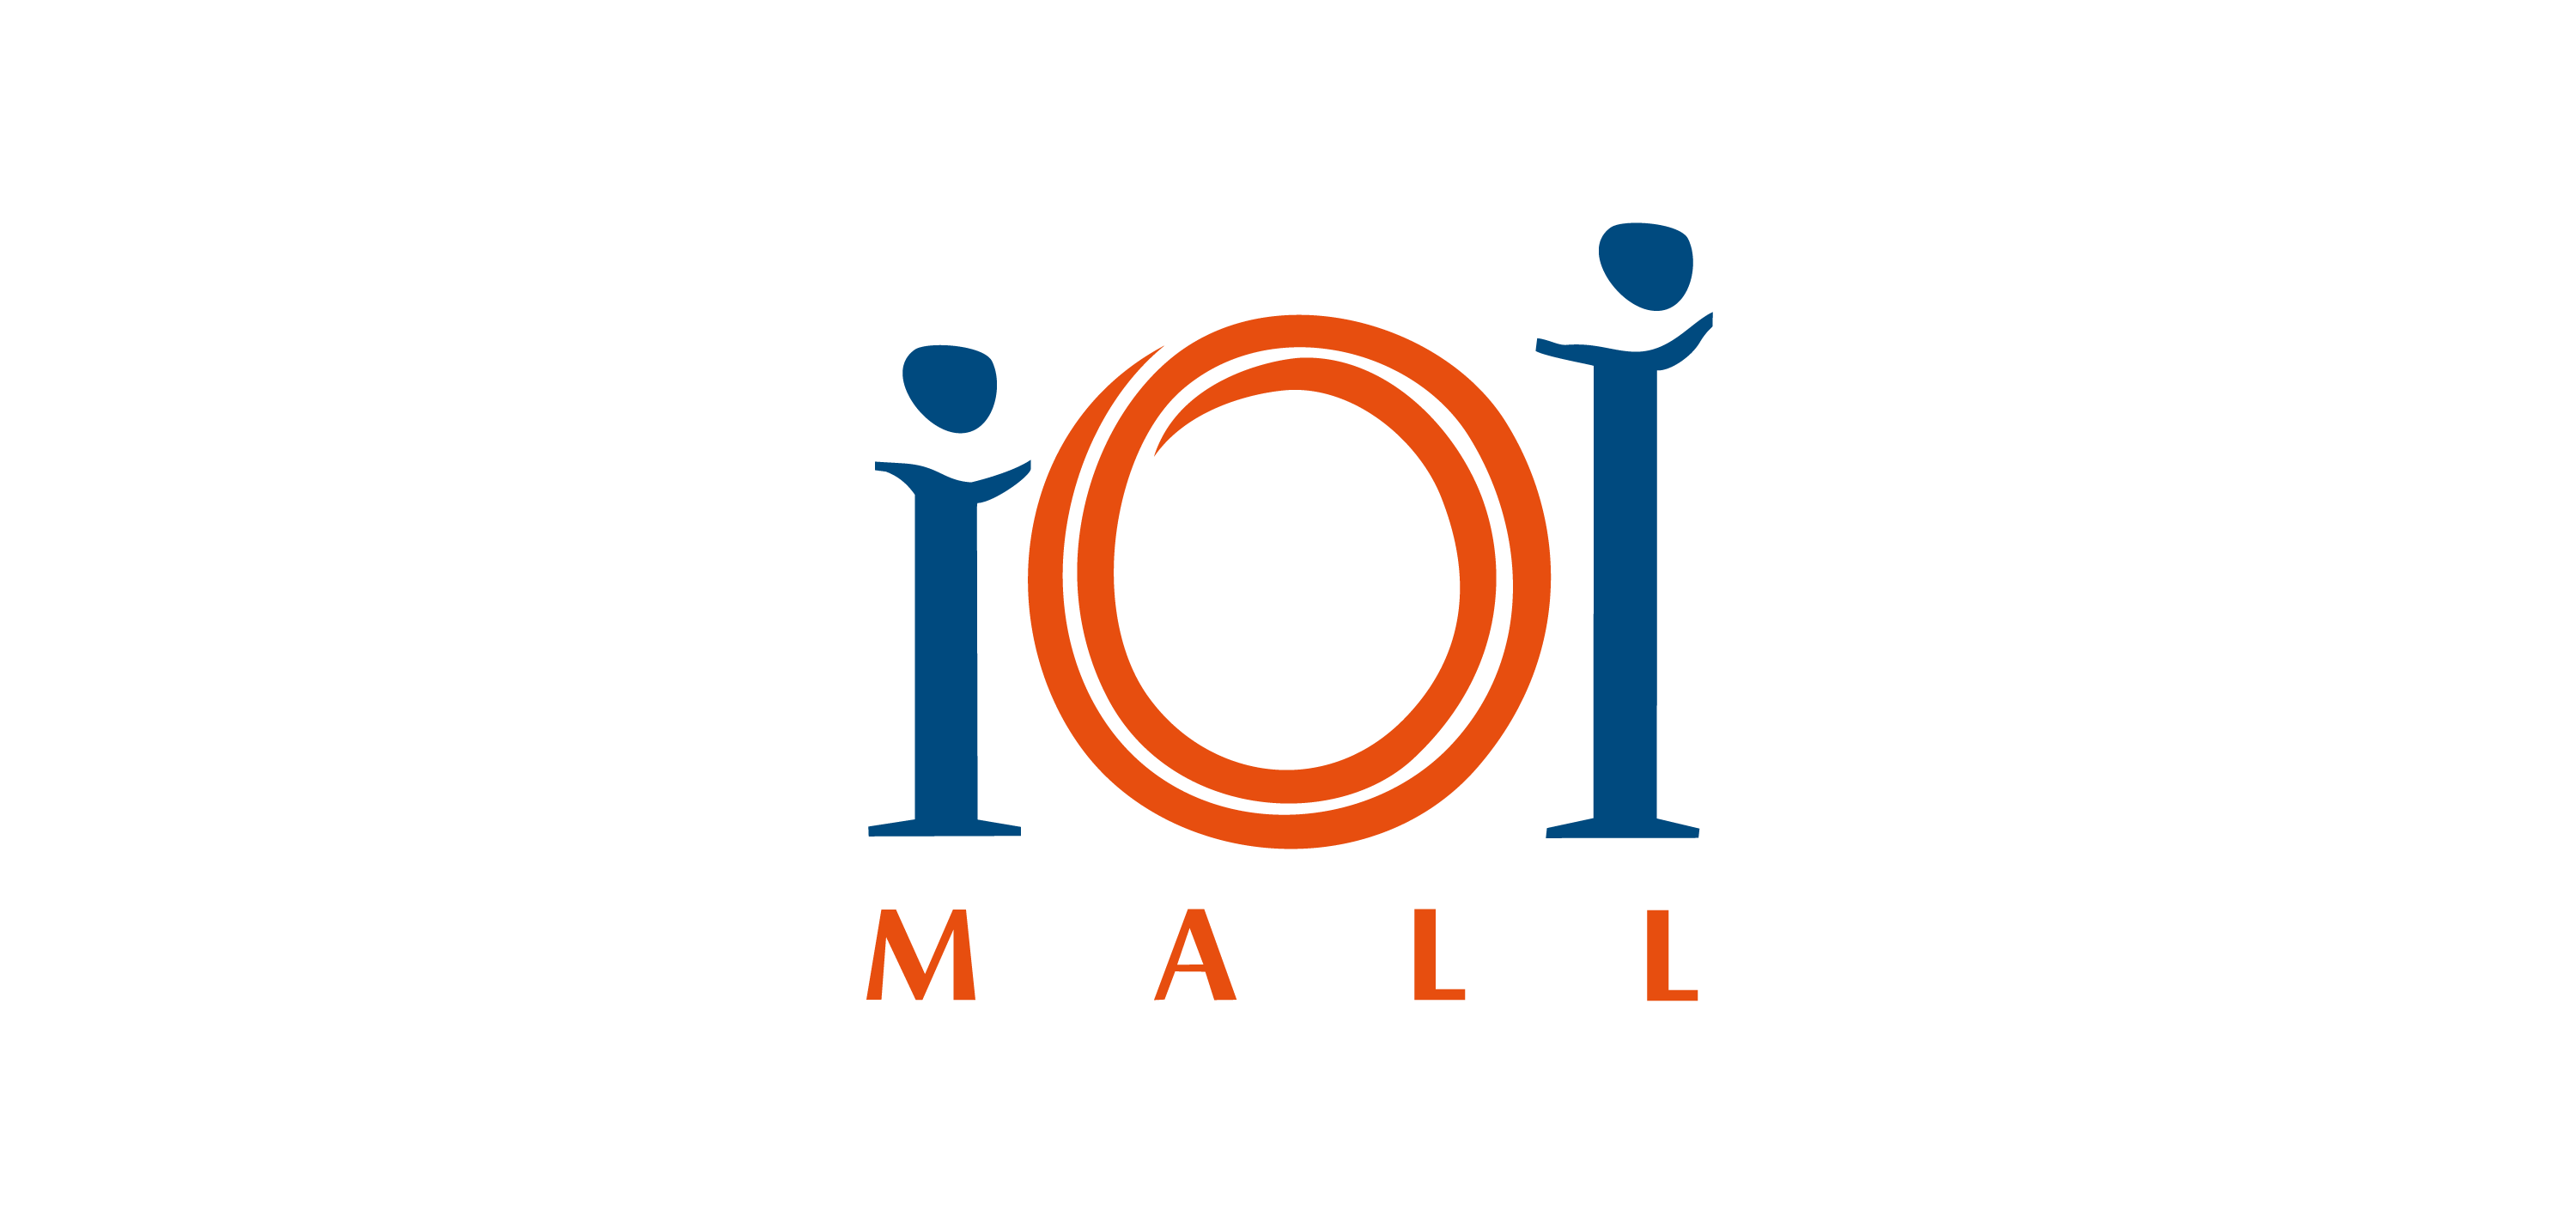 IOI Mall Vector Logo